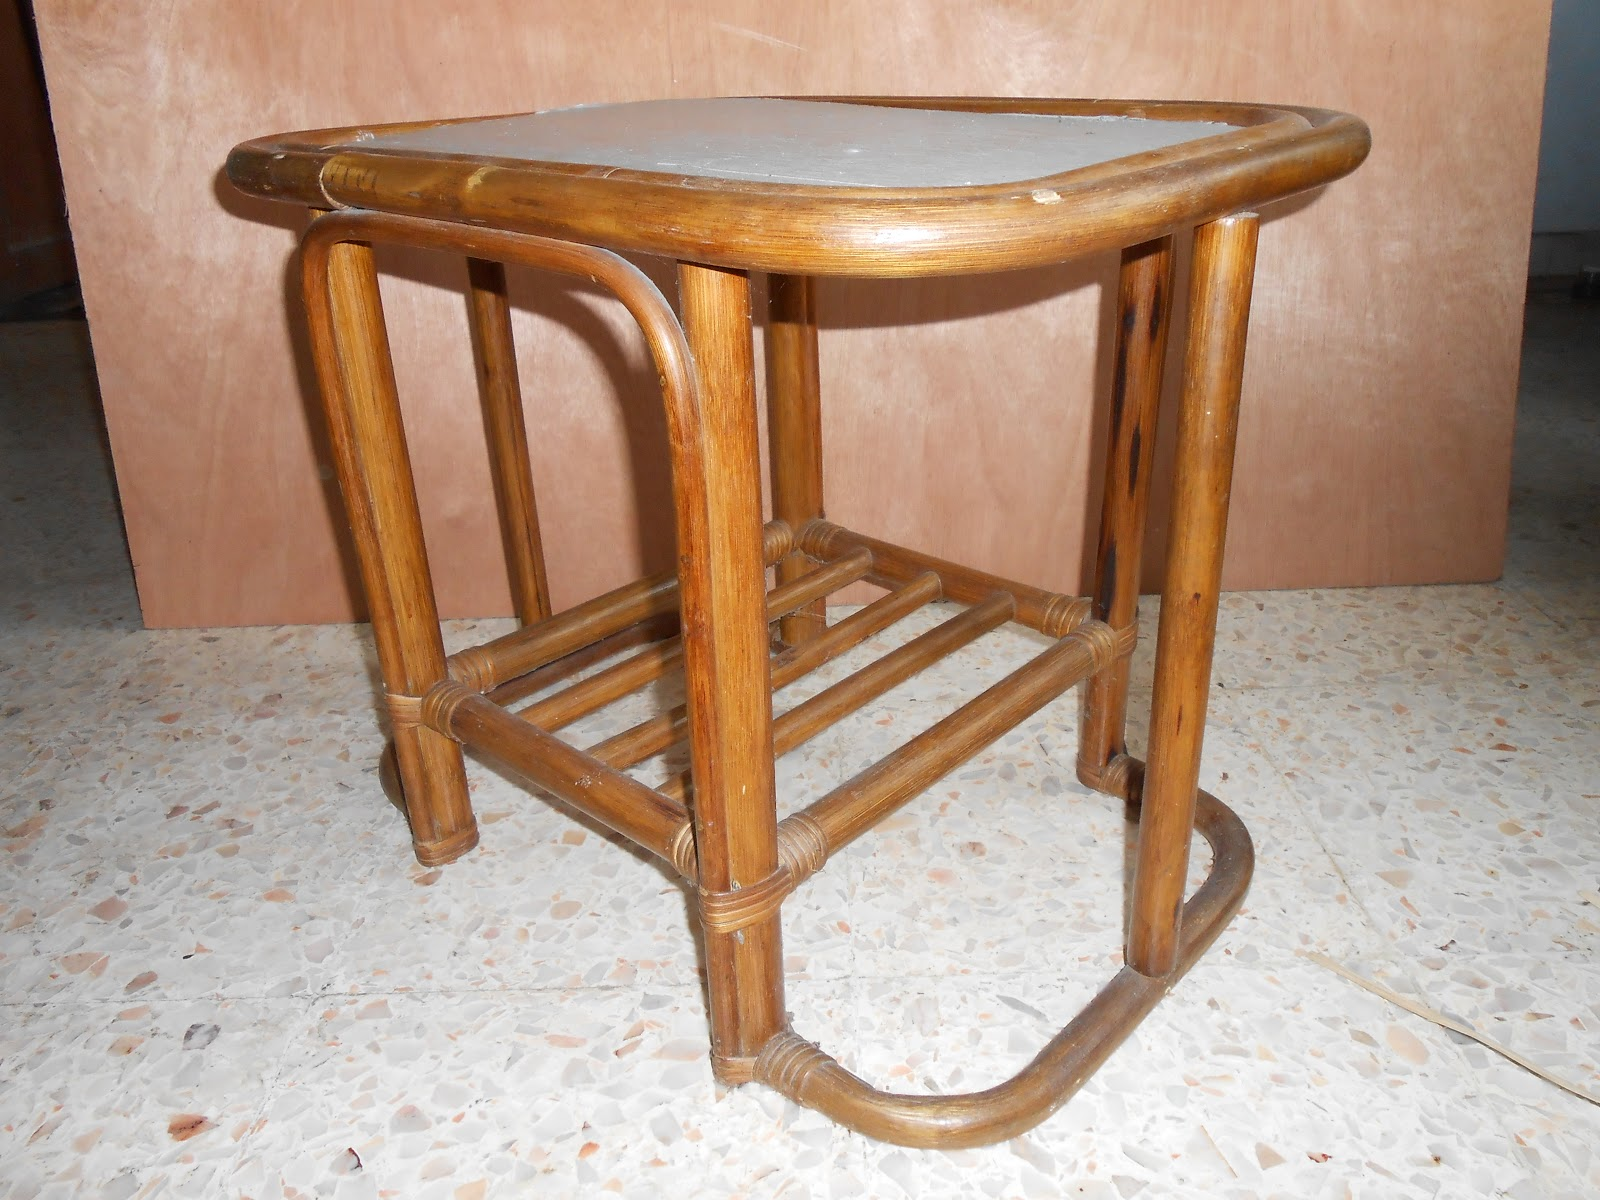 Refurnish Diy Rattan Bamboo Furniture Rattan Tea Table